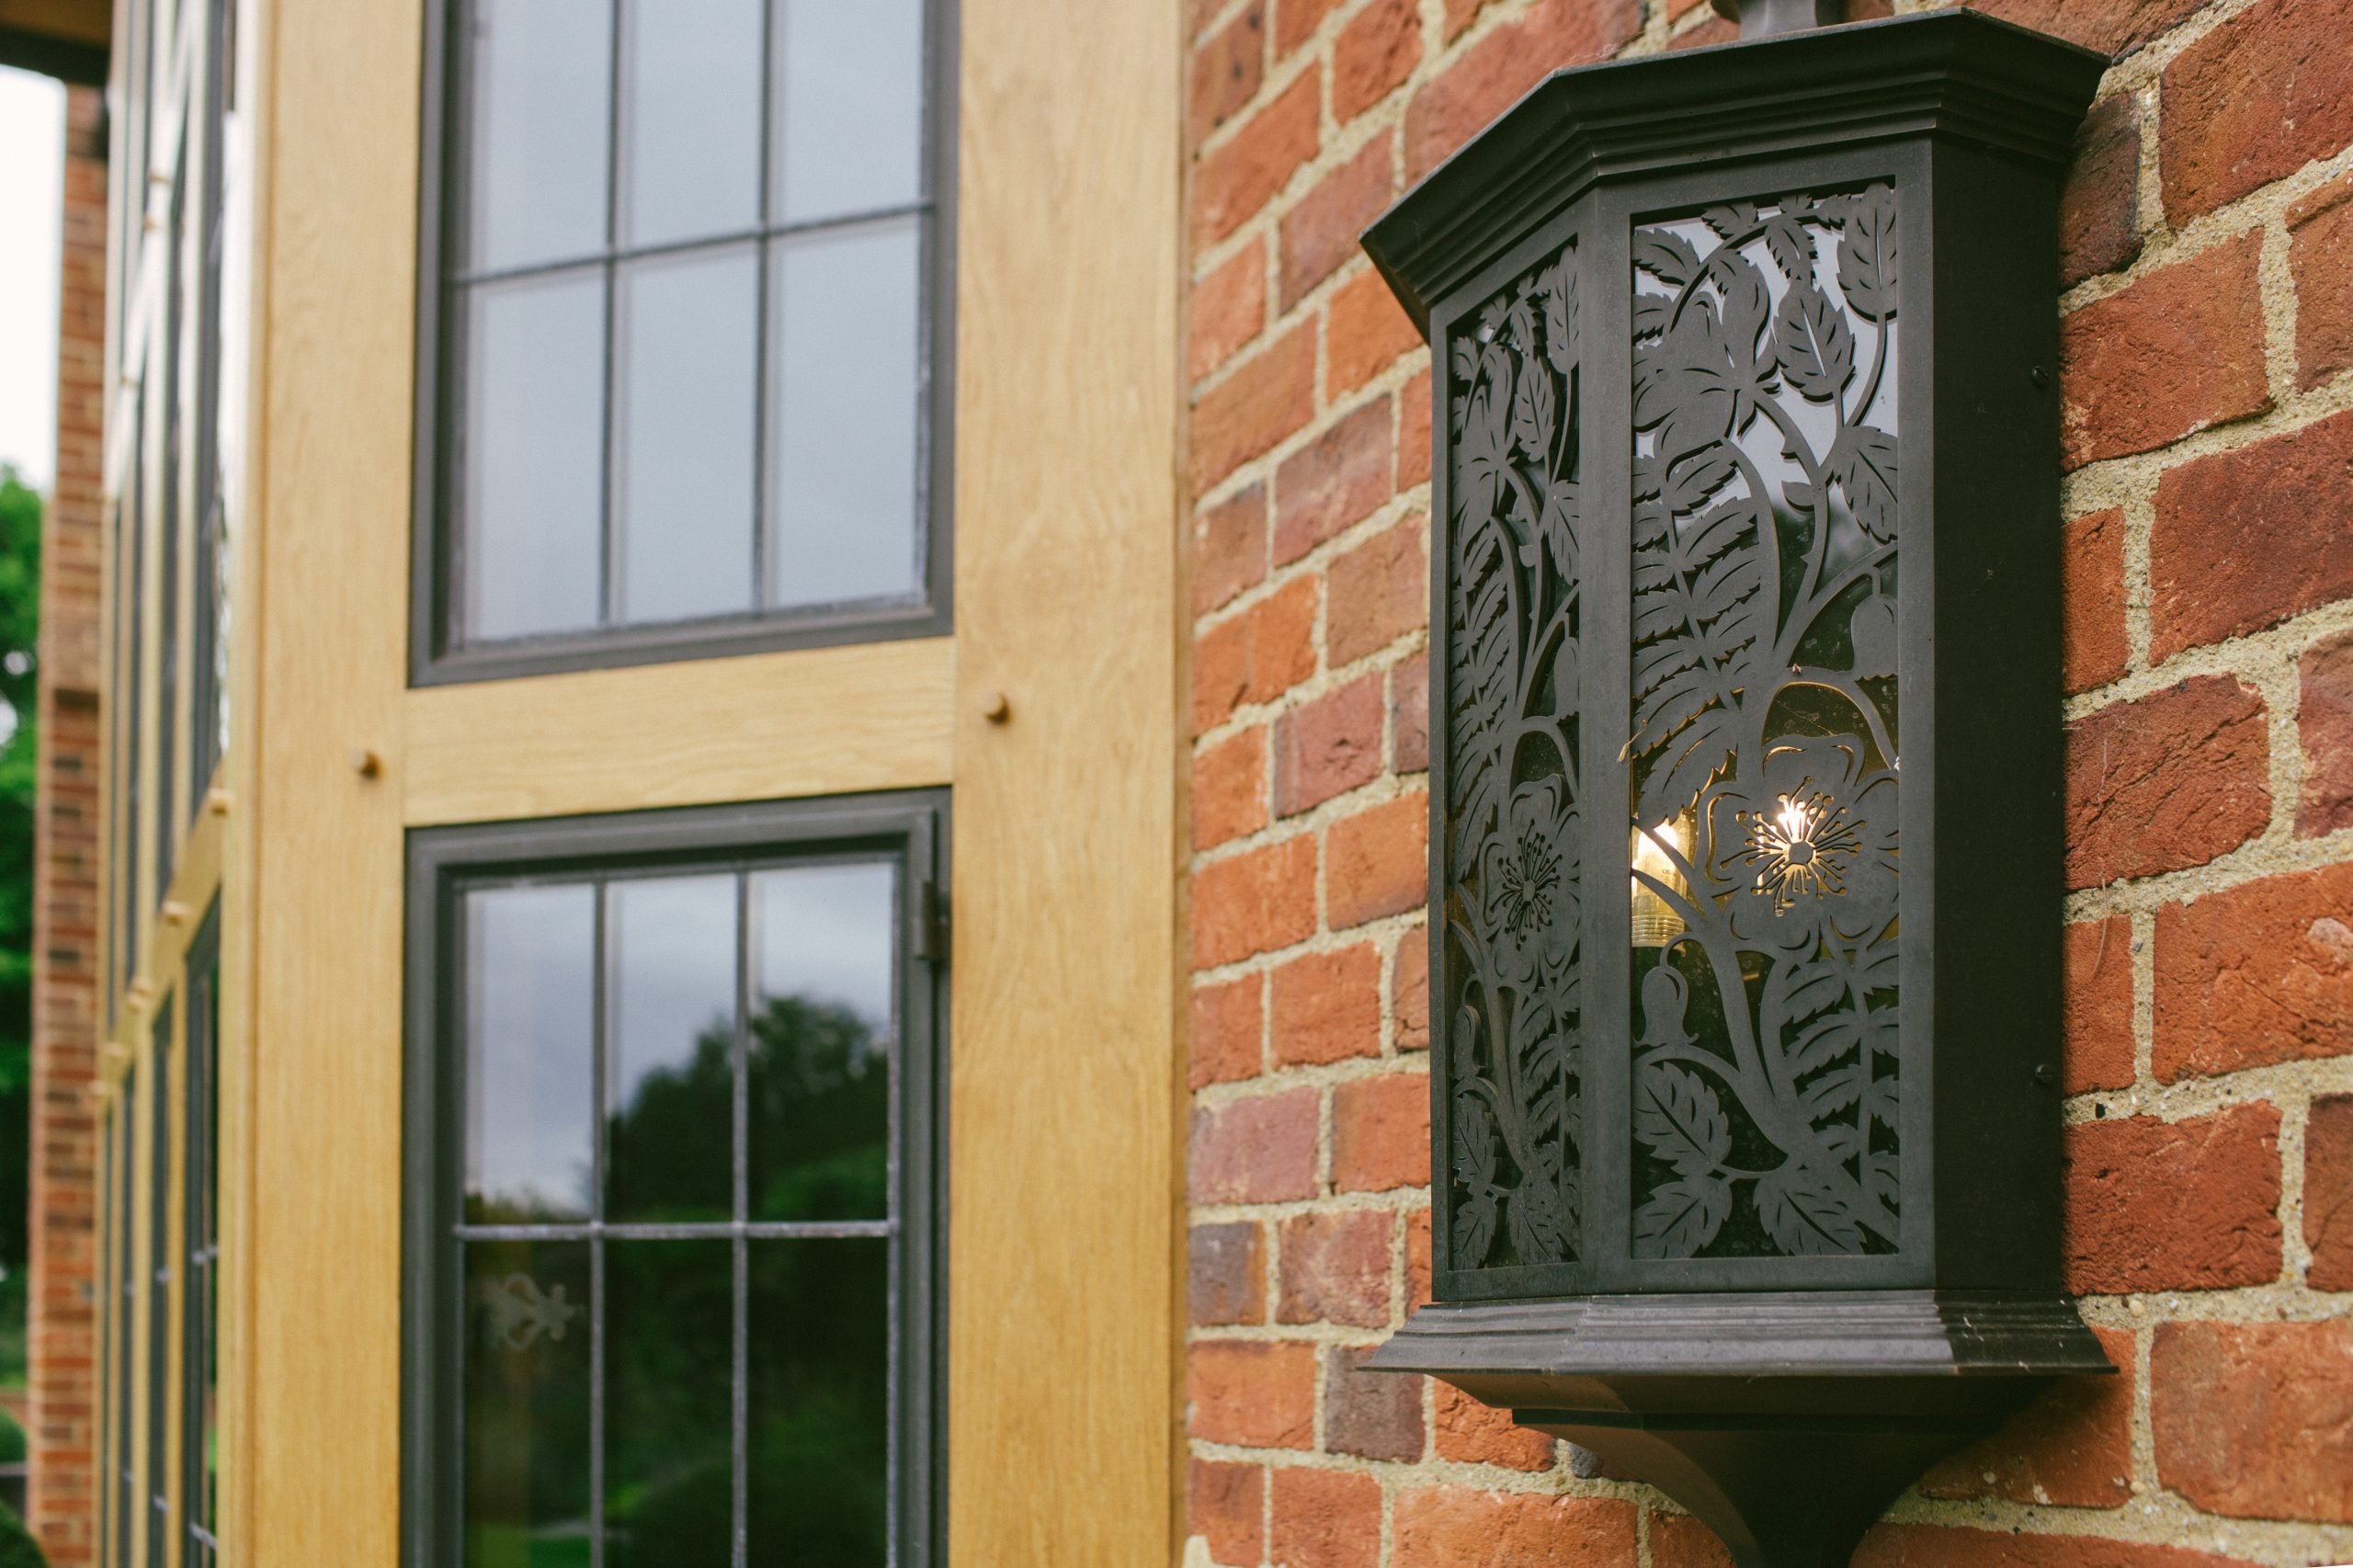 Bespoke garden wall lights in metal and glass